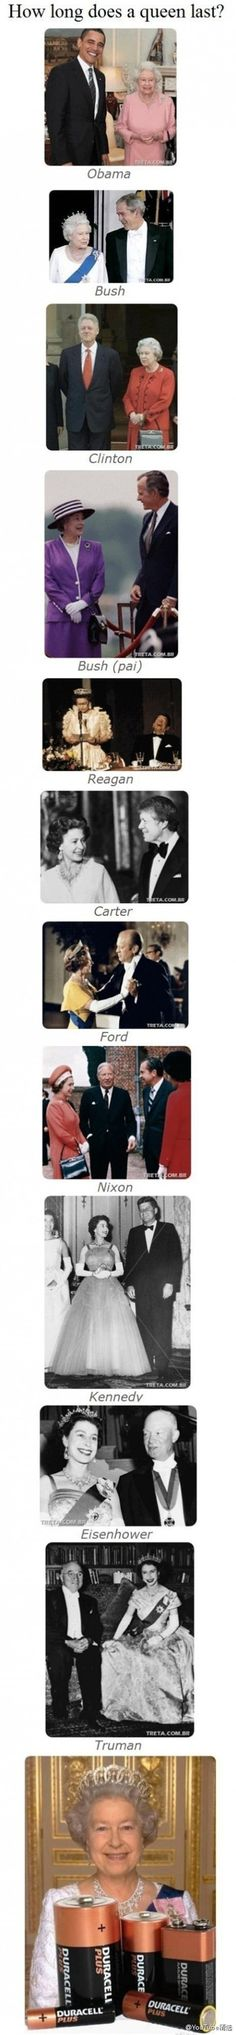 WOW, this is why I am glad we elect presidents every four years, and even then they can only serve two terms. We would probably still be stuck with Carter.